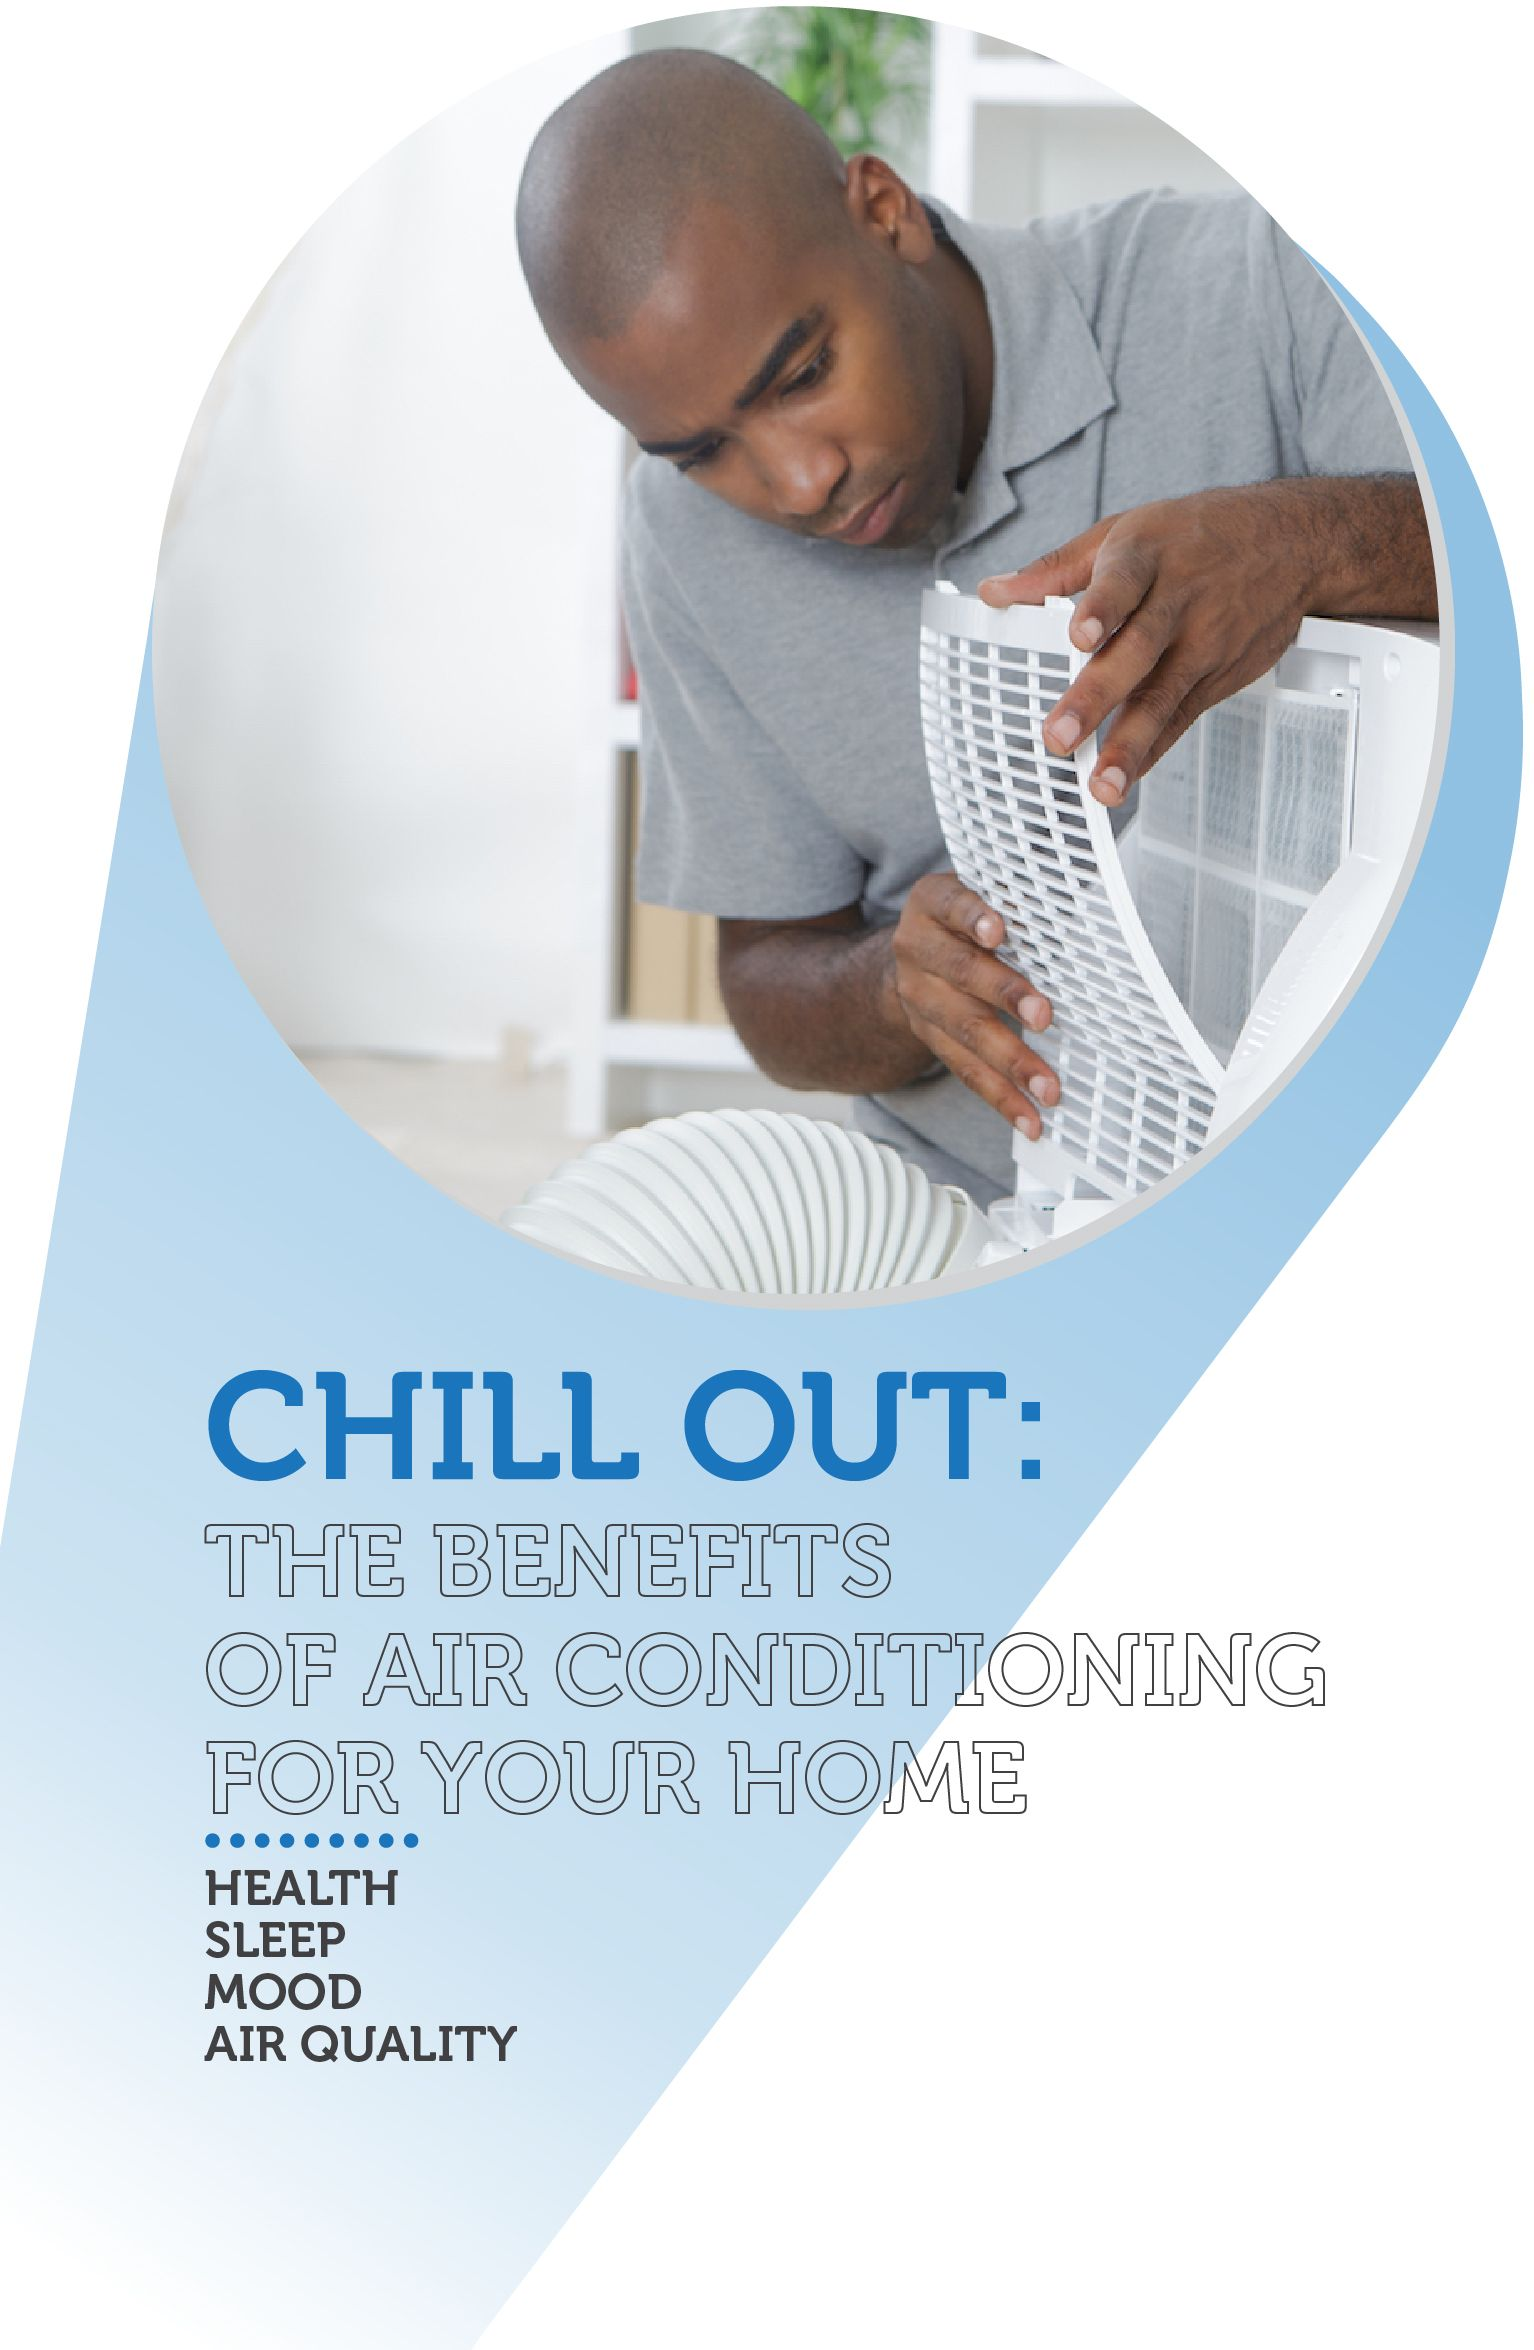 Chill Out The benefits of air conditioning for your home